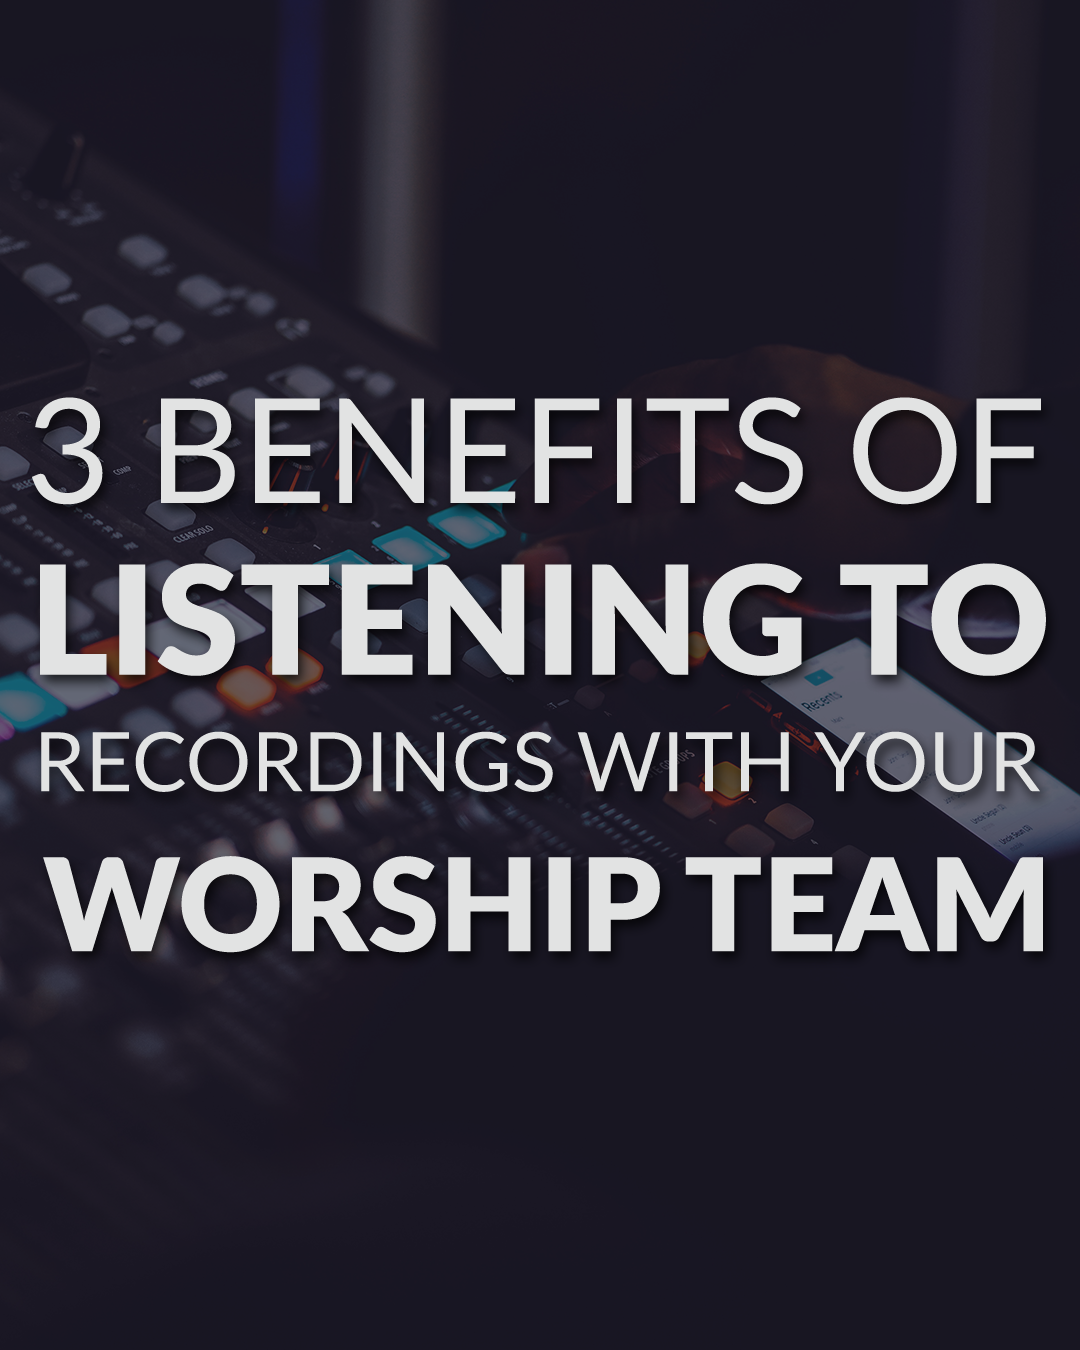 3 benefits of listening to recordings of your worship team